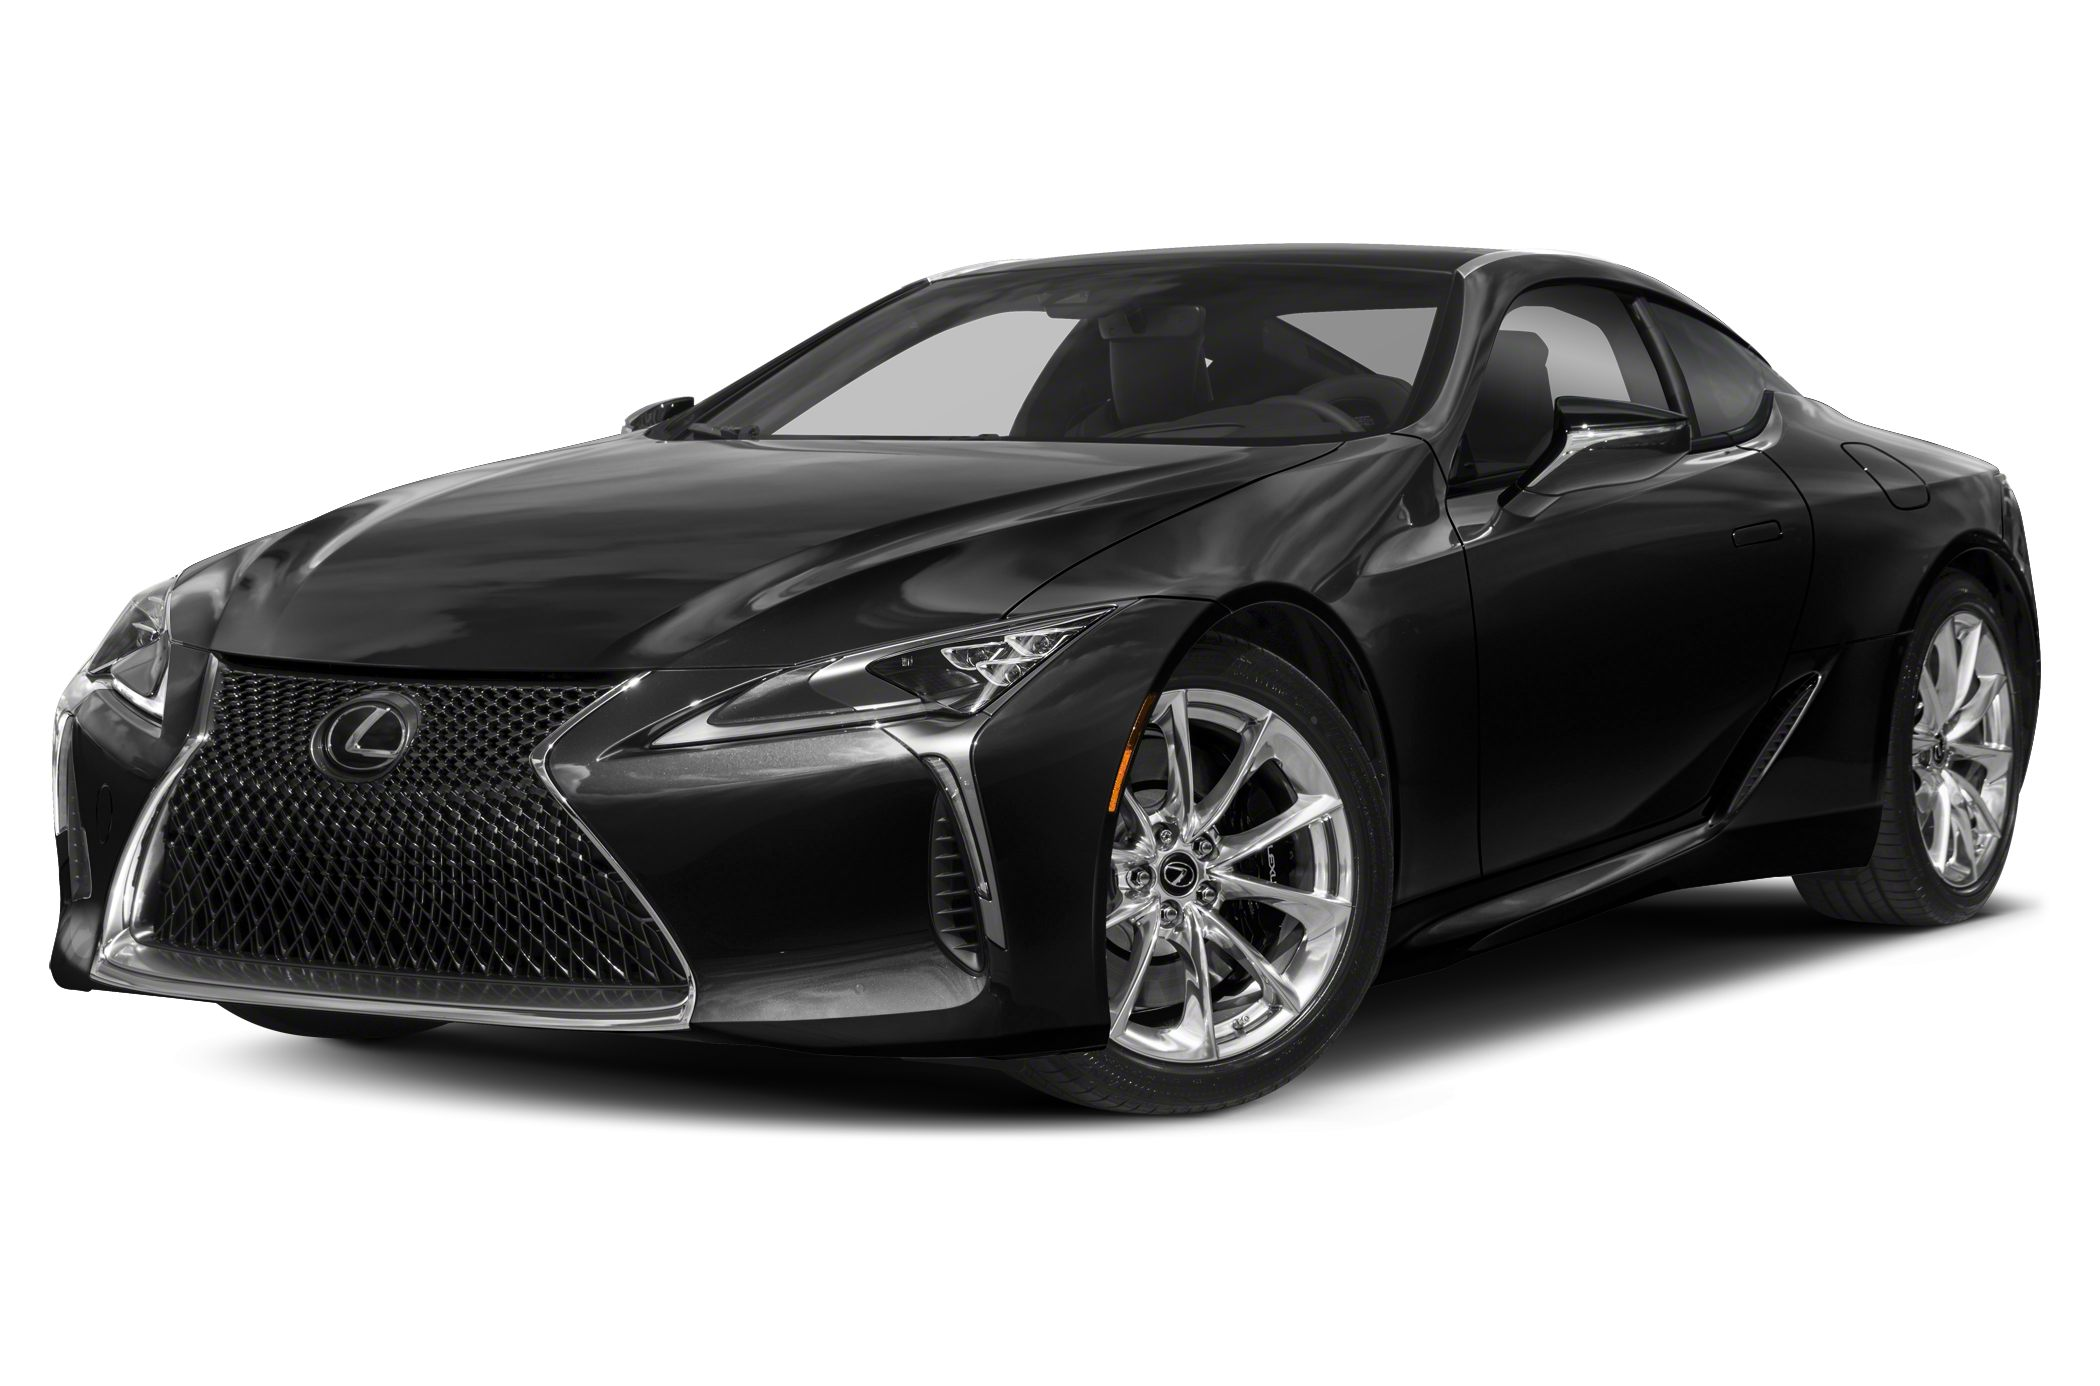 The 2018 Lexus LC 500 to co star in Marvel s Black Panther Autoblog